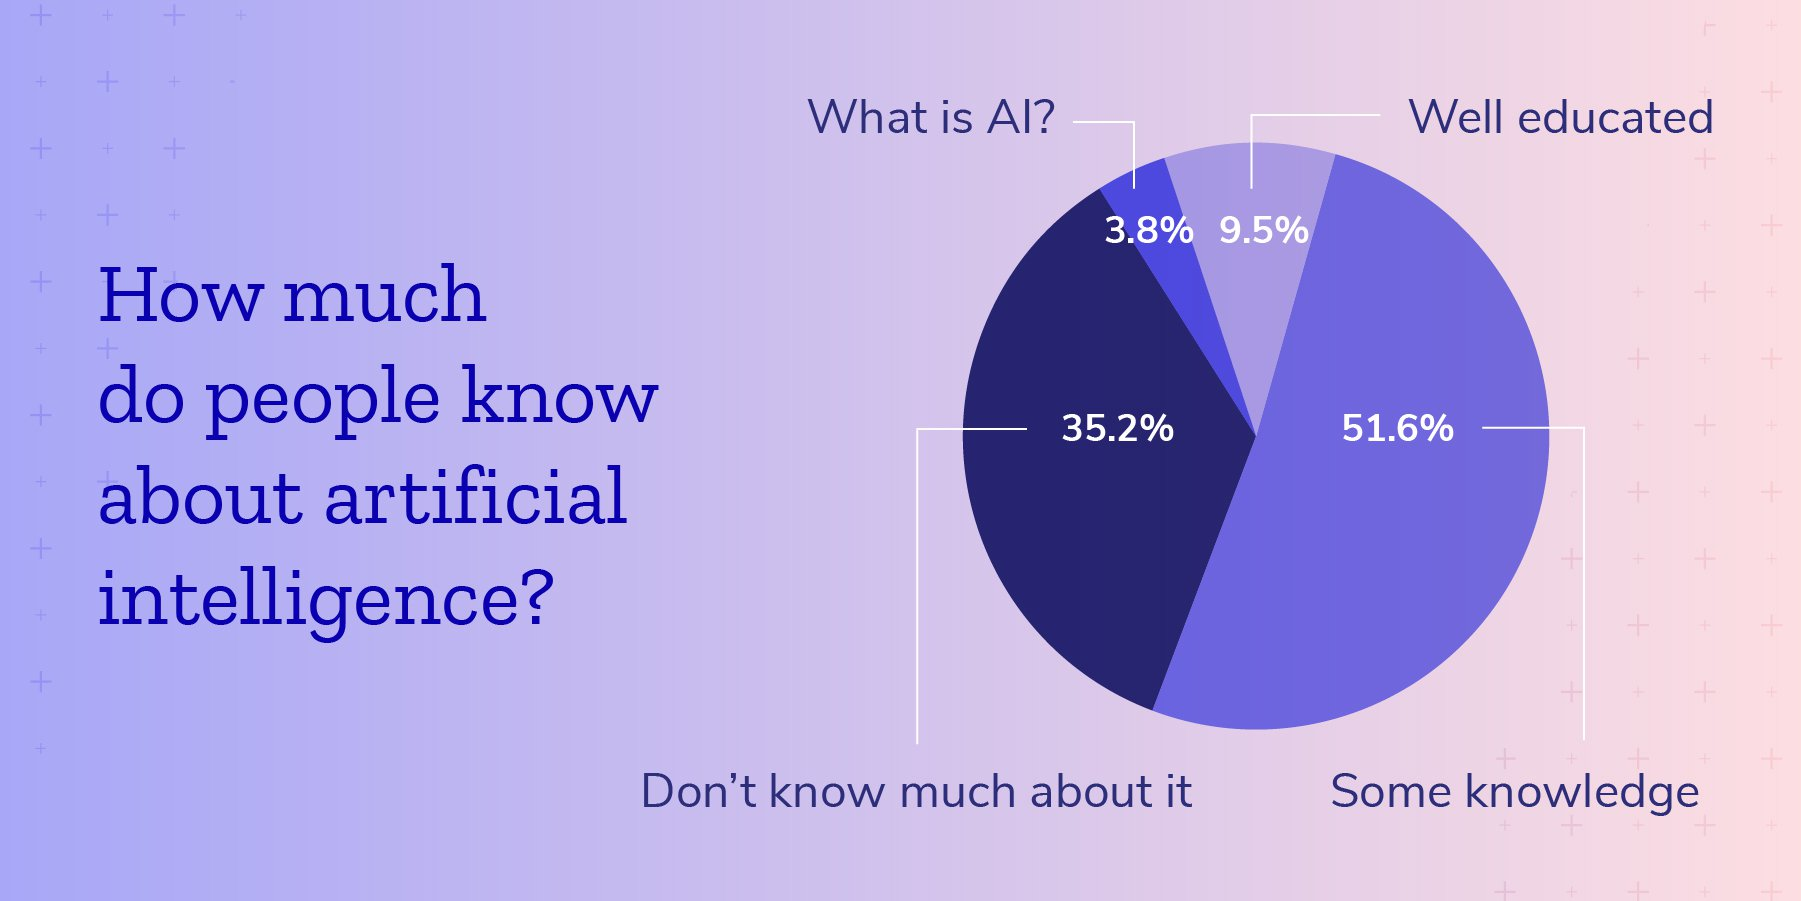 How much do people know about AI